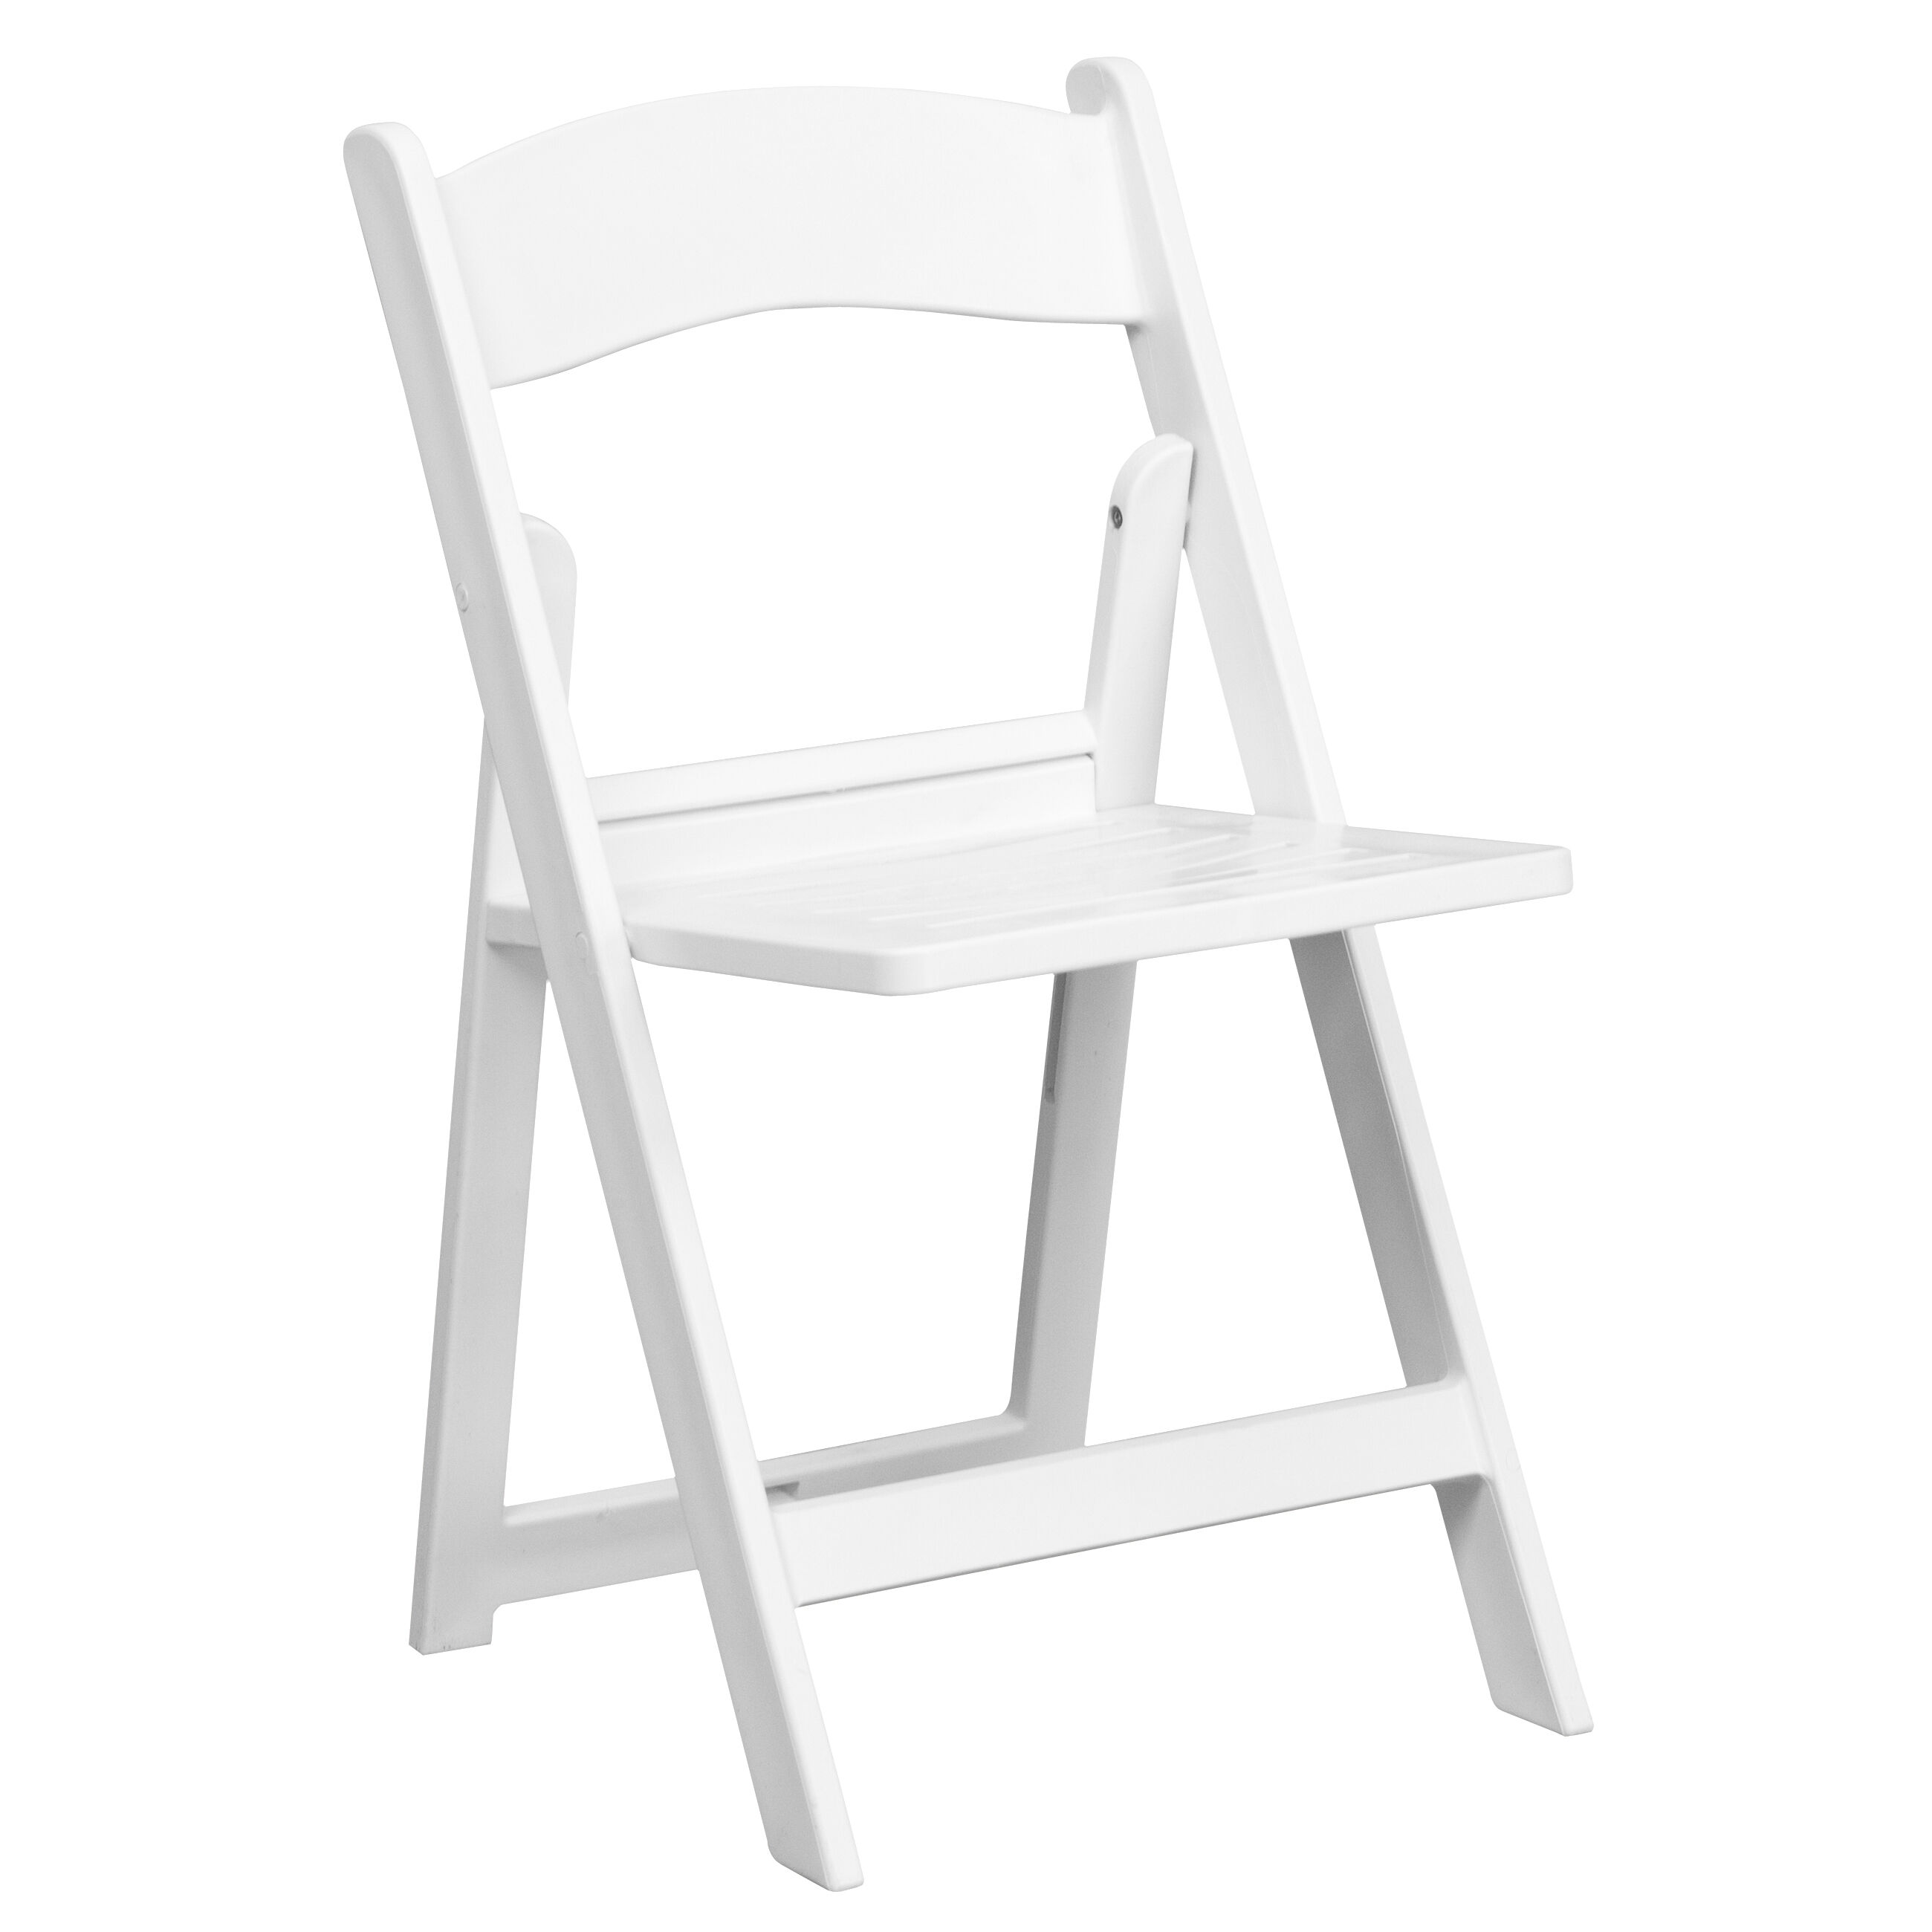 Capacity White Resin Folding Chair with Slatted Seat : resin folding chair - Cheerinfomania.Com